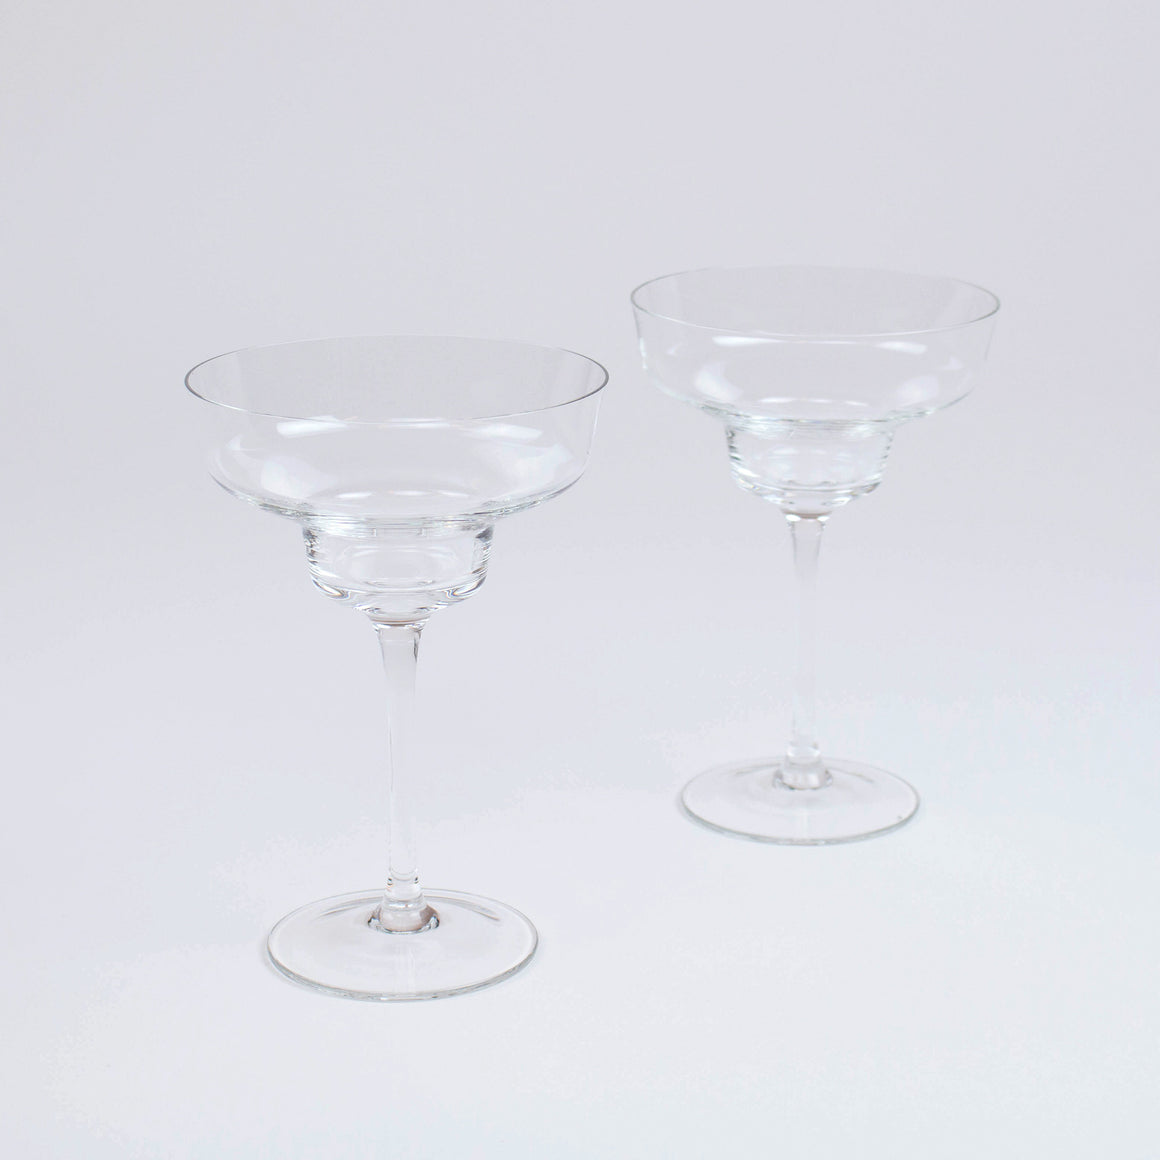 Crystal Margarita Glass (Set of 2)